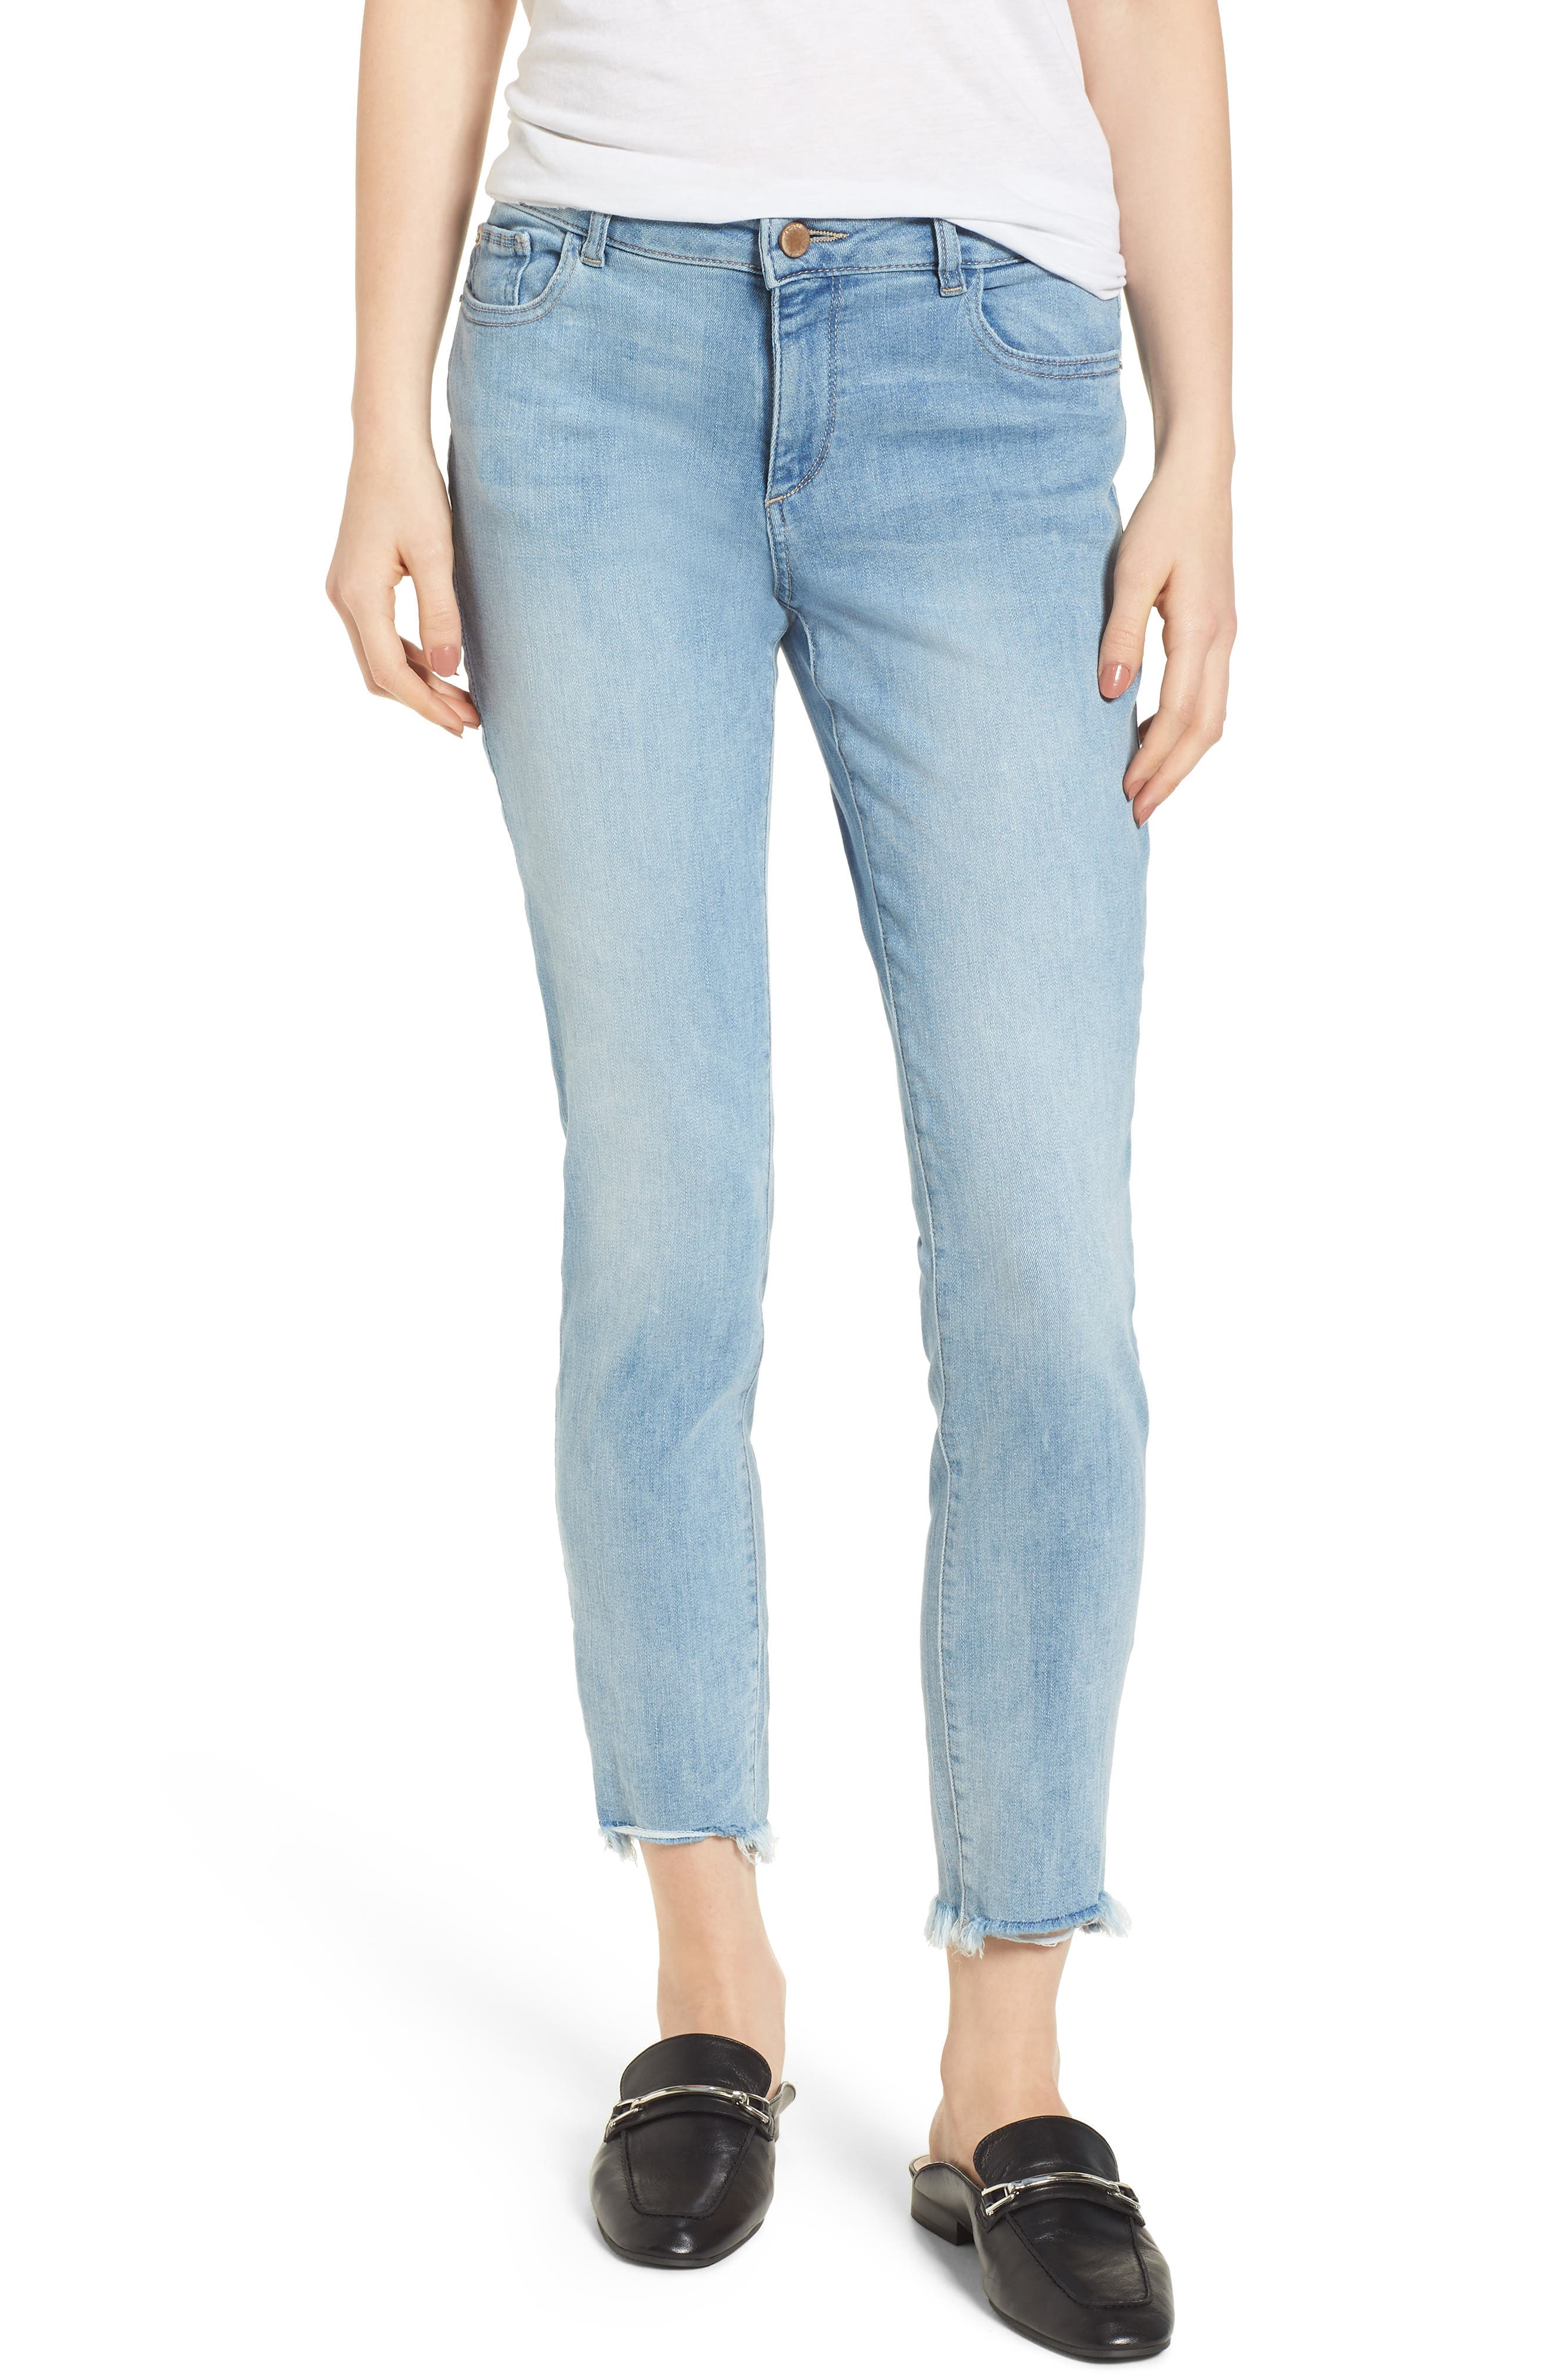 Coco Curvy Ankle Skinny Jeans,                             Main thumbnail 1, color,                             Kelso